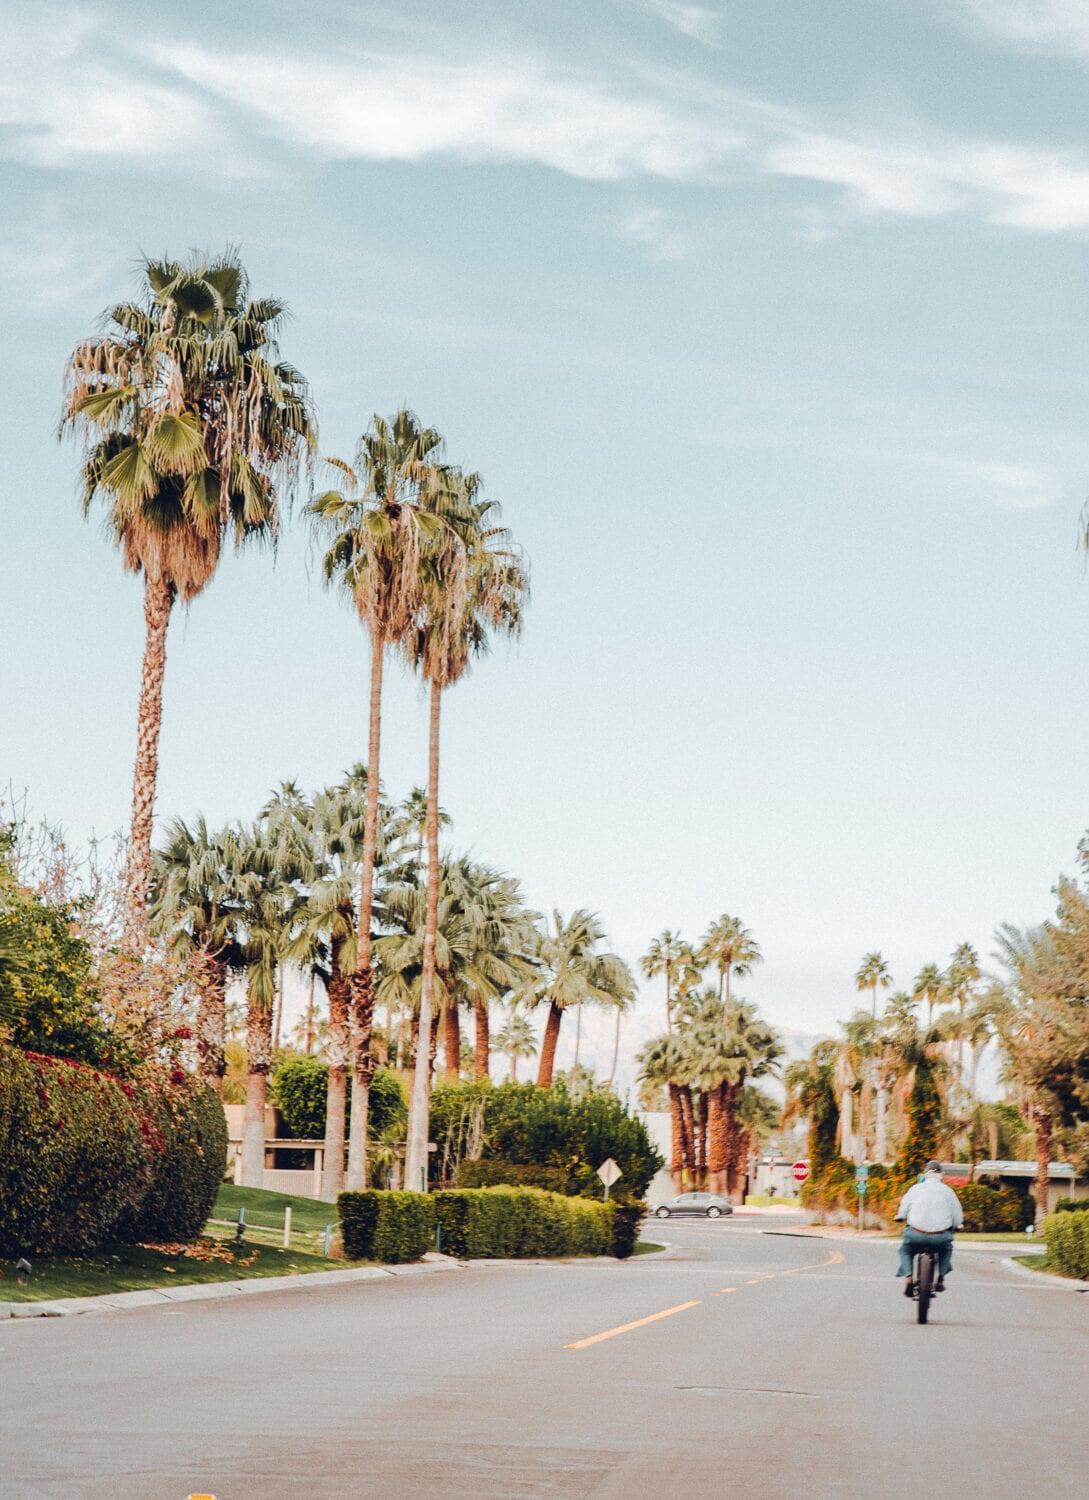 From a speakeasy style cocktail bar, $4.95 bottomless champagne and the city's most instagrammable locations, here are 15 local gems you must visit during your next Palm Springs getaway.